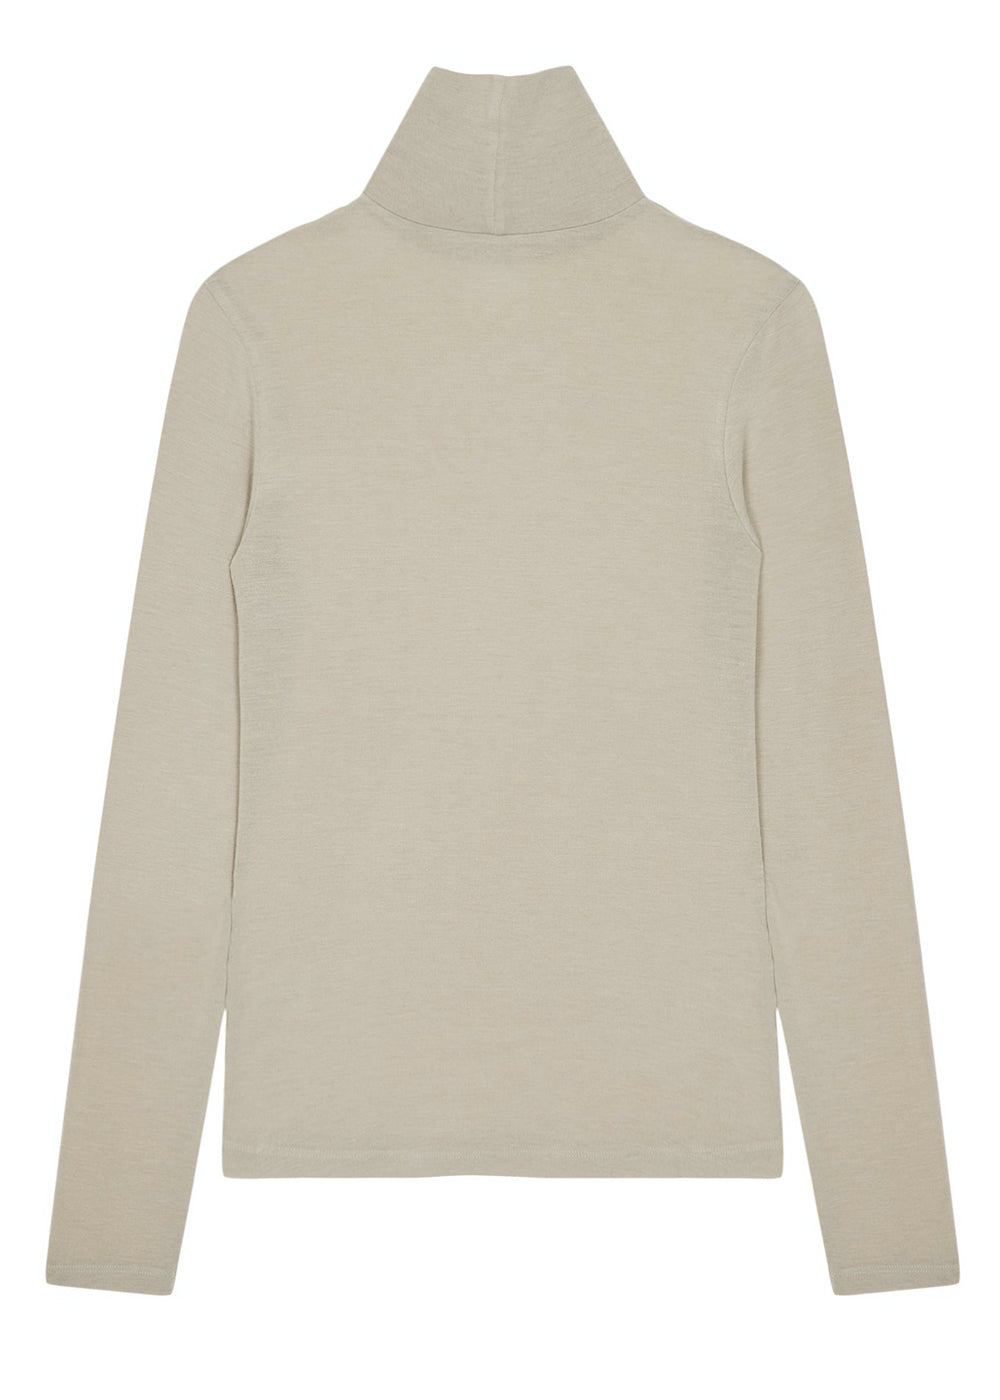 SLIM TURTLENECK T SHIRT BEIGE